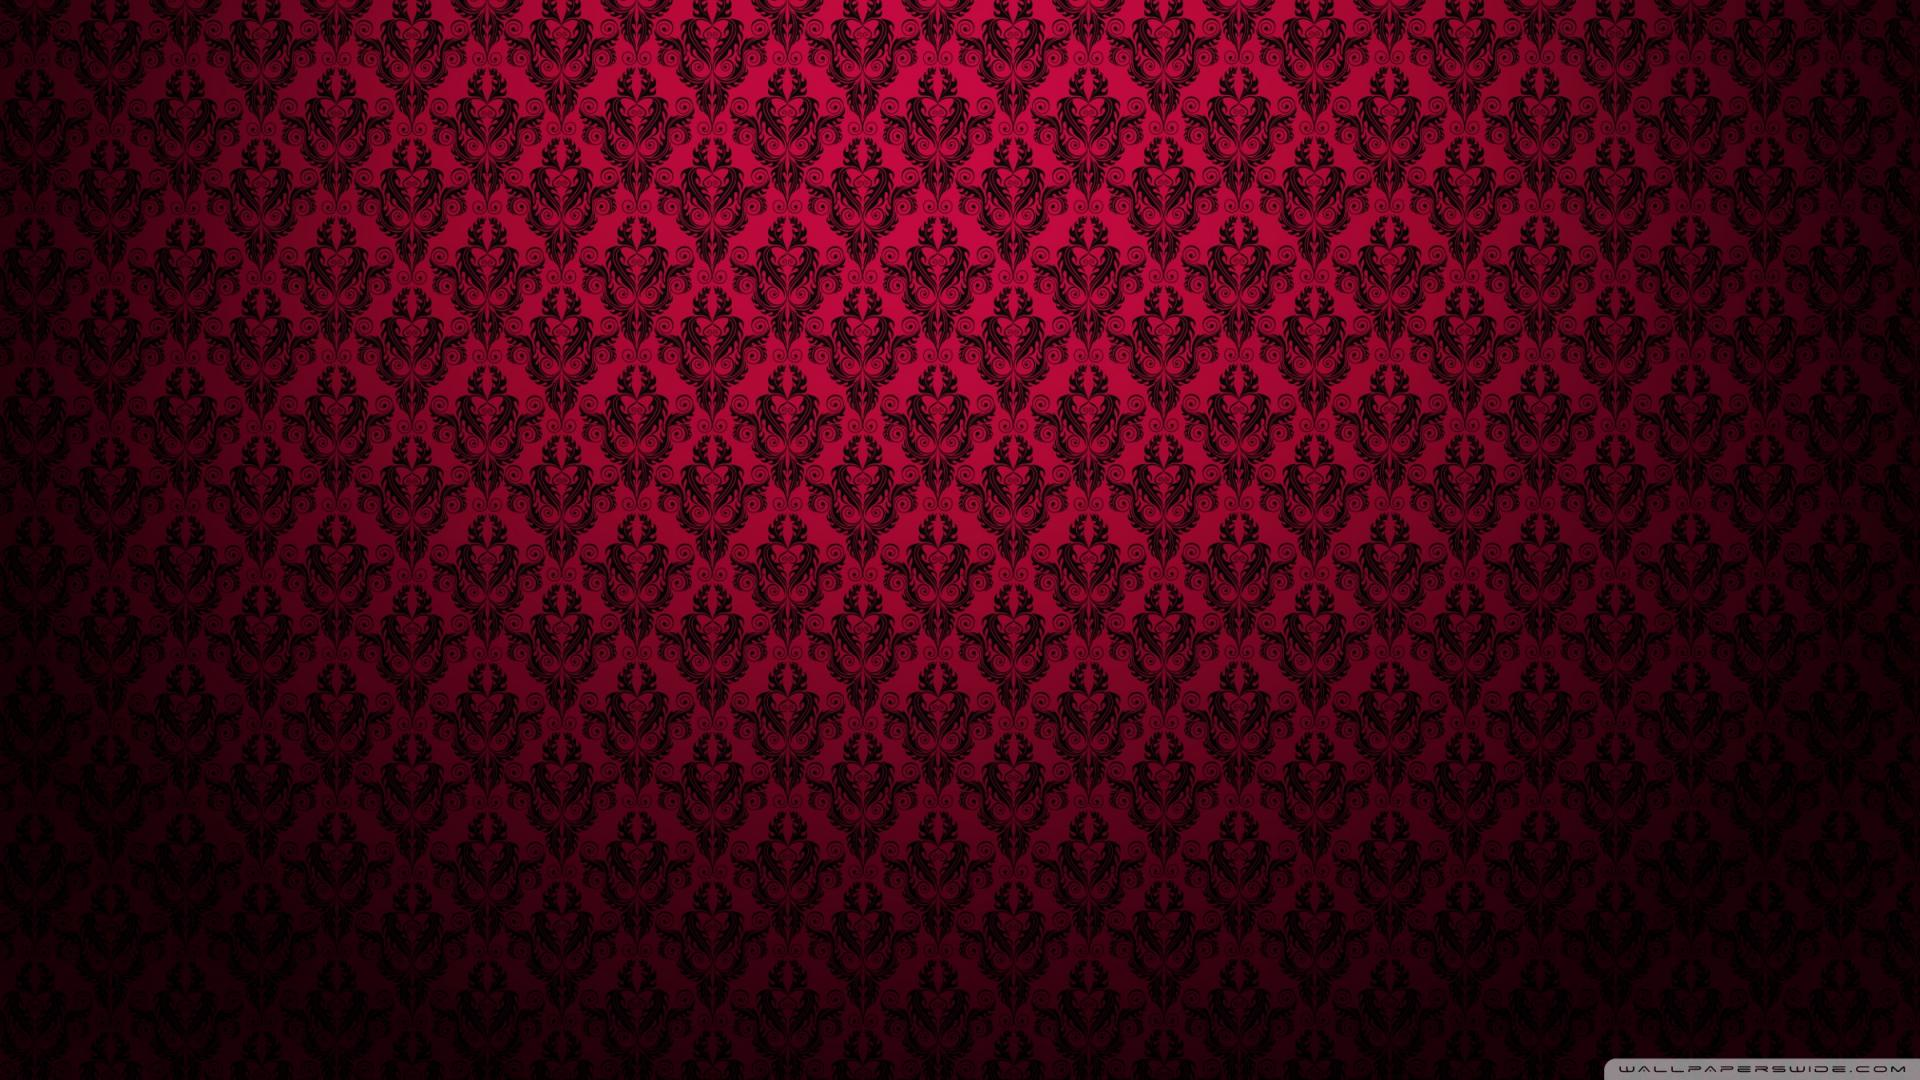 Red And Black Damask Pattern Wallpaper Home Pinterest